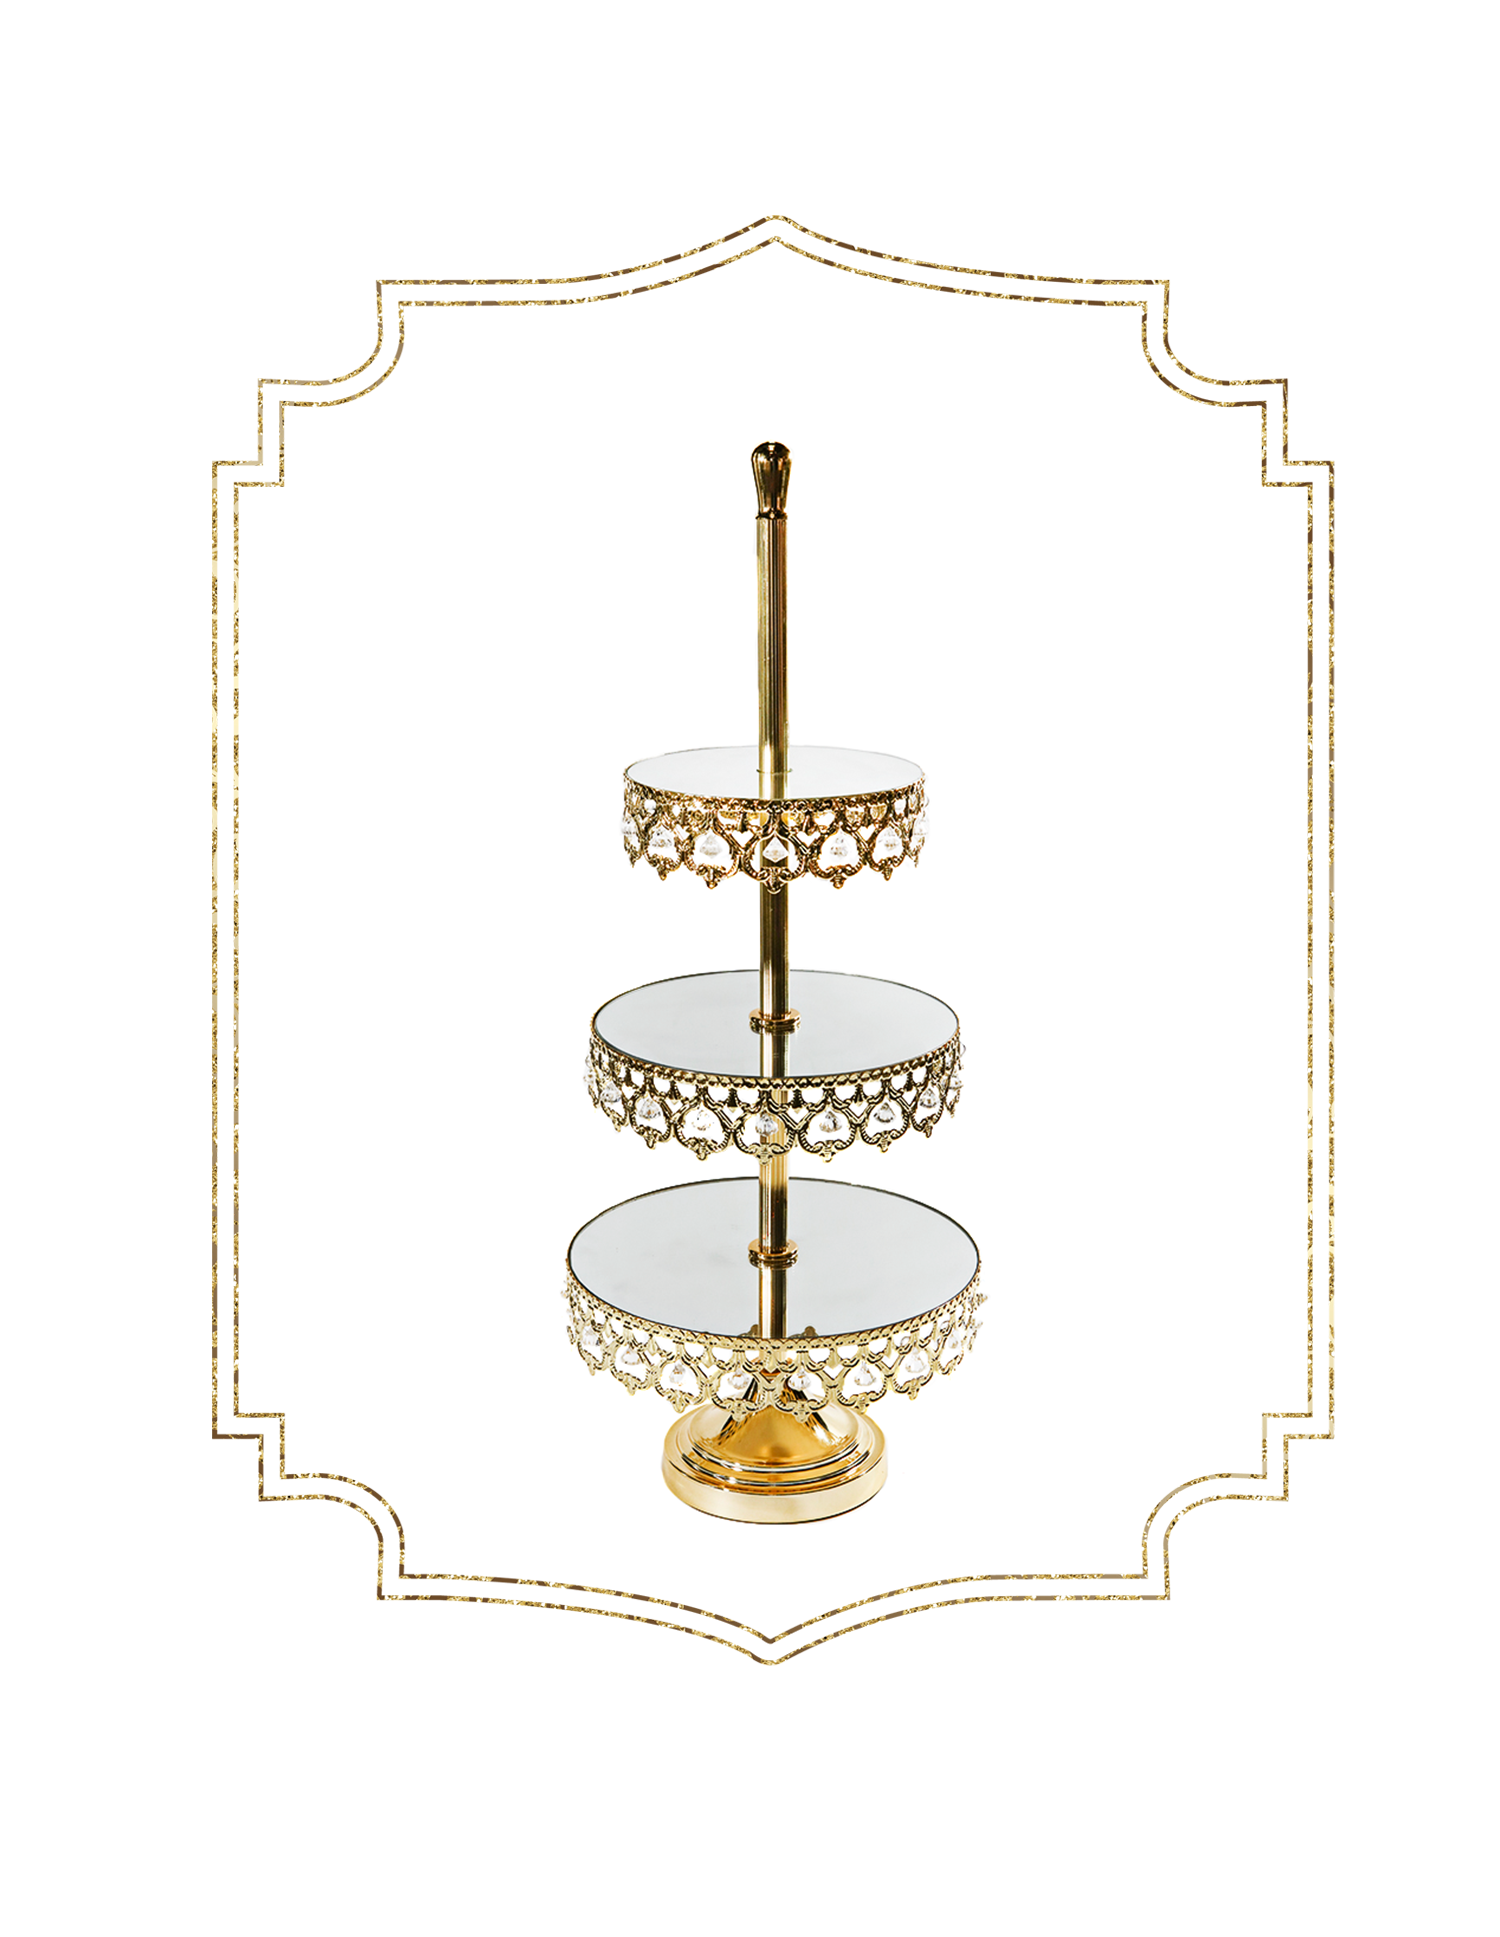 SHOP-preview SHINY GOLD crown 3 tier dessert stand.png